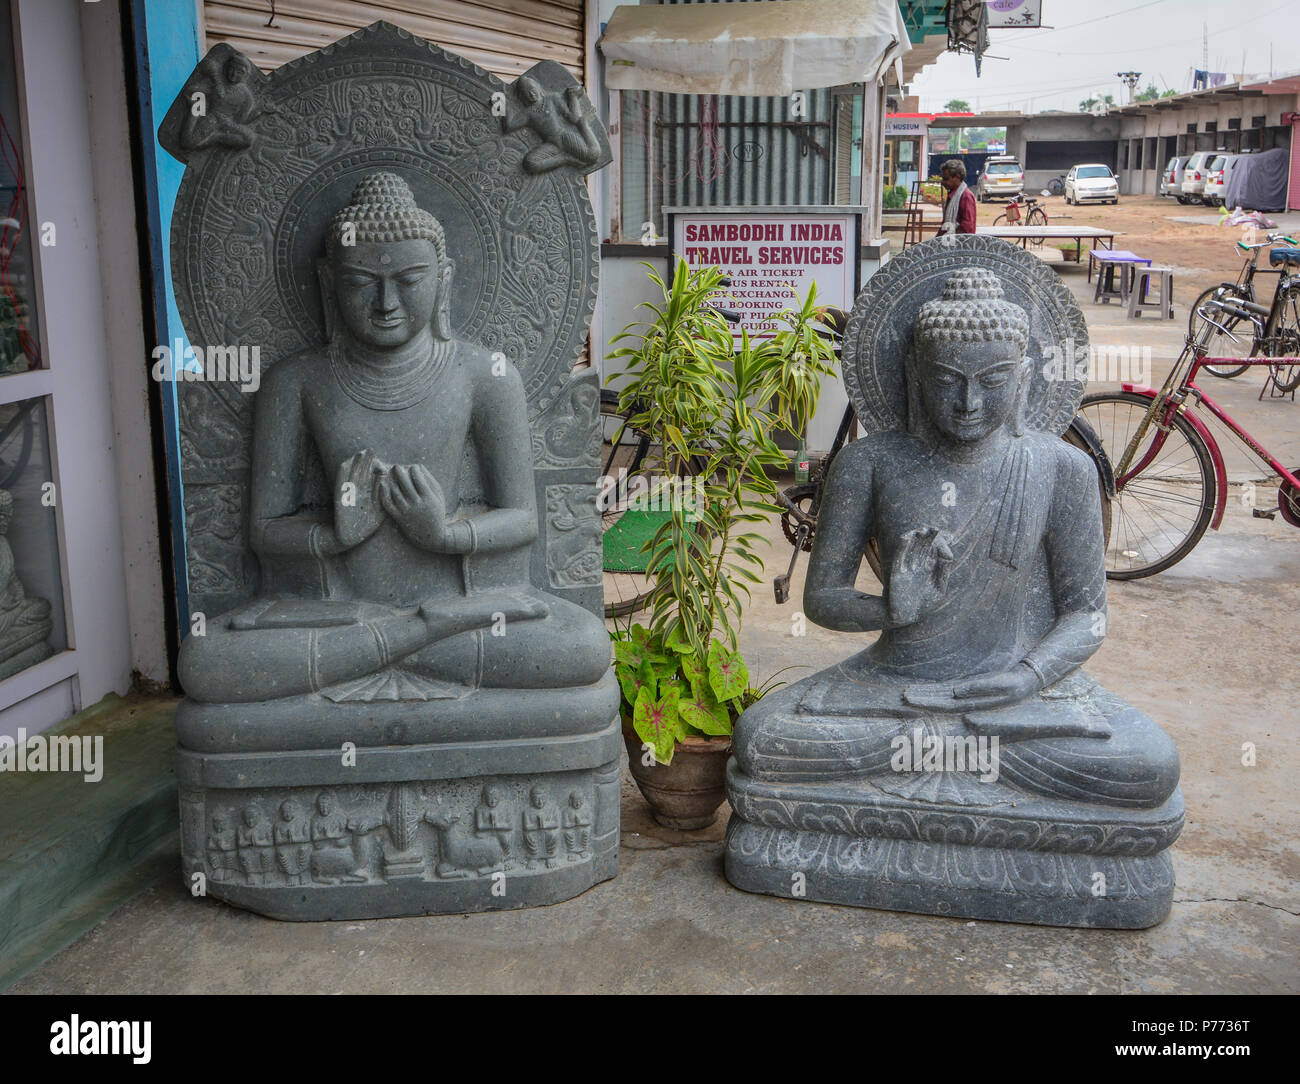 Bodhgaya, India - July 9, 2015. Buddha statues for sale in Bodhgaya, India. Bodhgaya is the most revered of all Buddhist sacred sites. - Stock Image